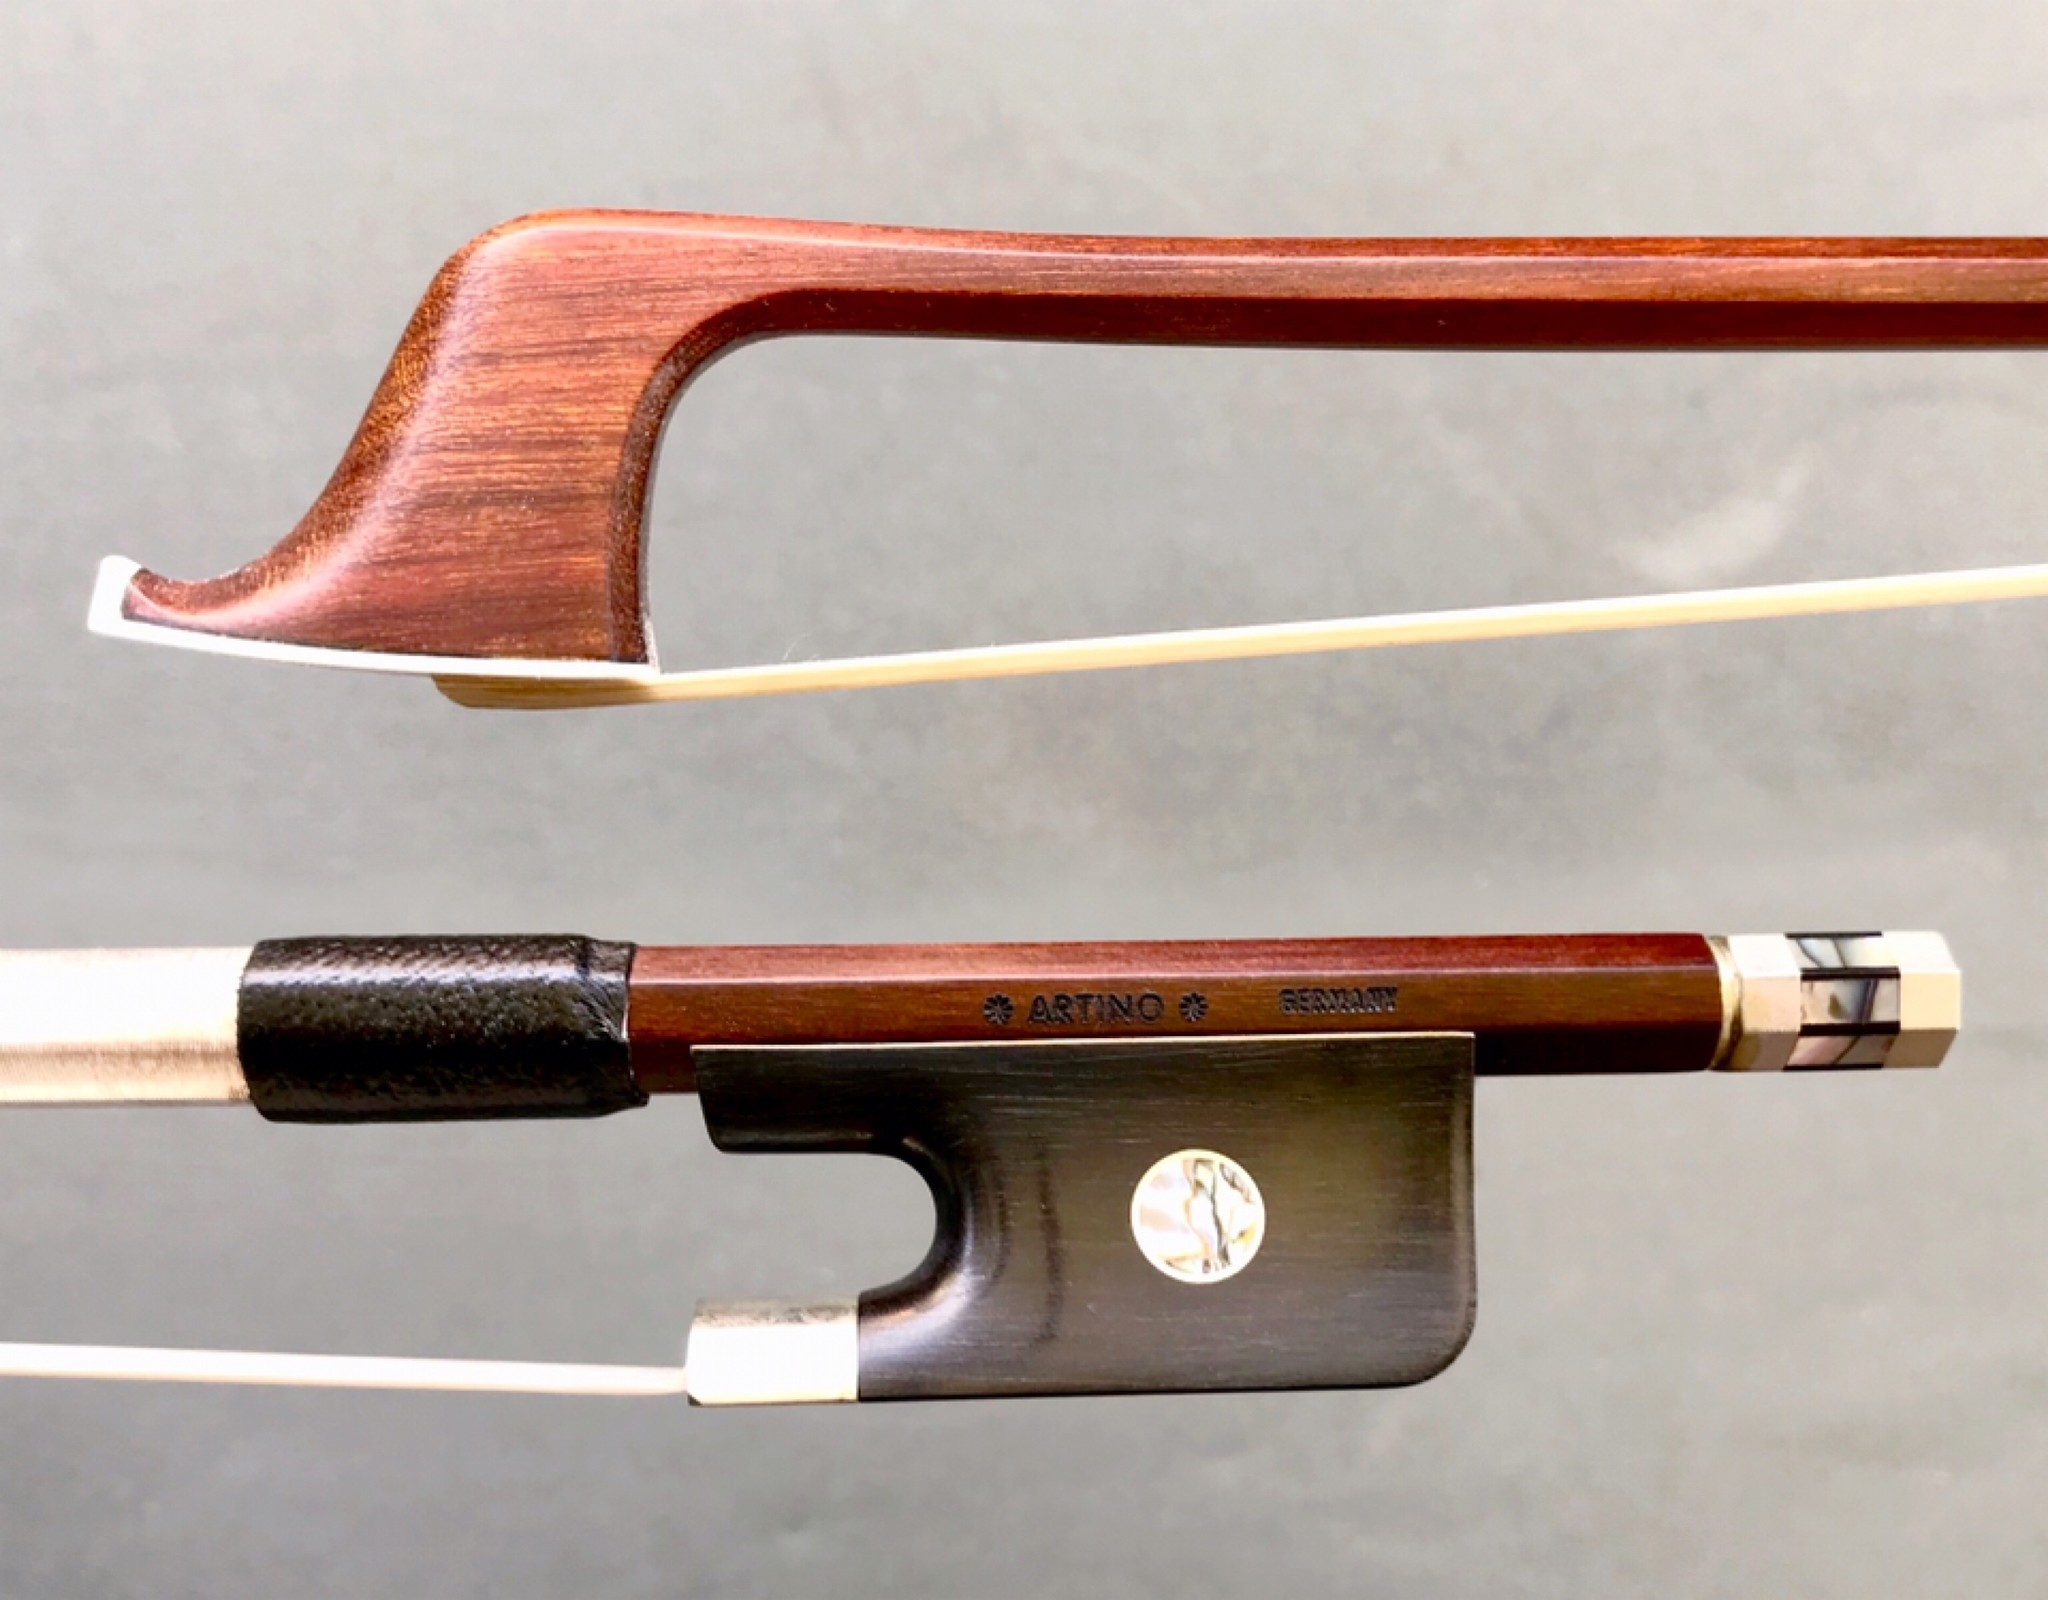 Otto Musica *ARTINO* GERMANY silver Pernambuco cello bow, octagonal, with Paris eyes & fancy button